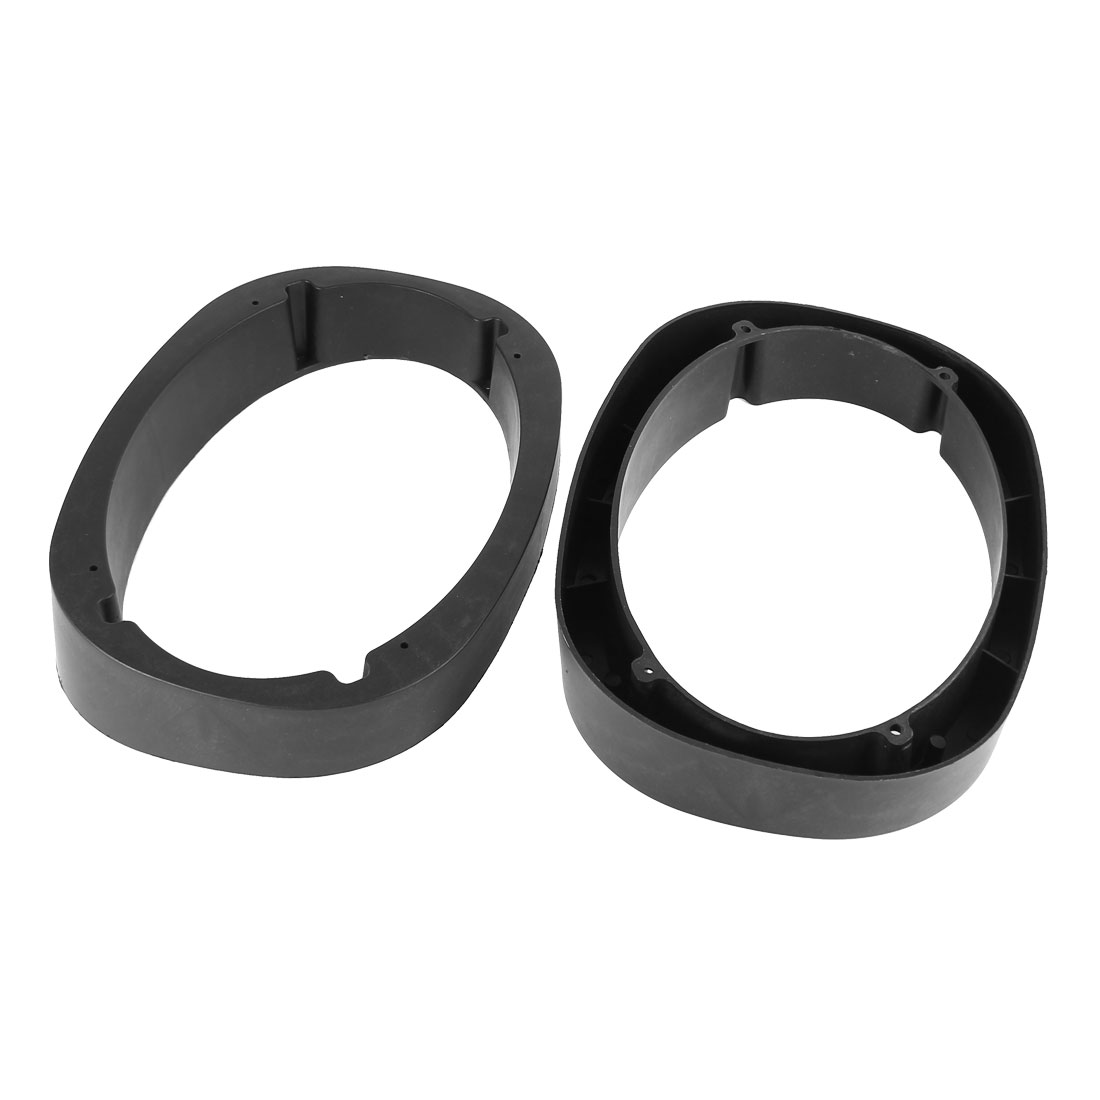 2 Pcs Black Universal 32mm Depth Plastic Spacer Ring 222x152mm Oval Car Speaker